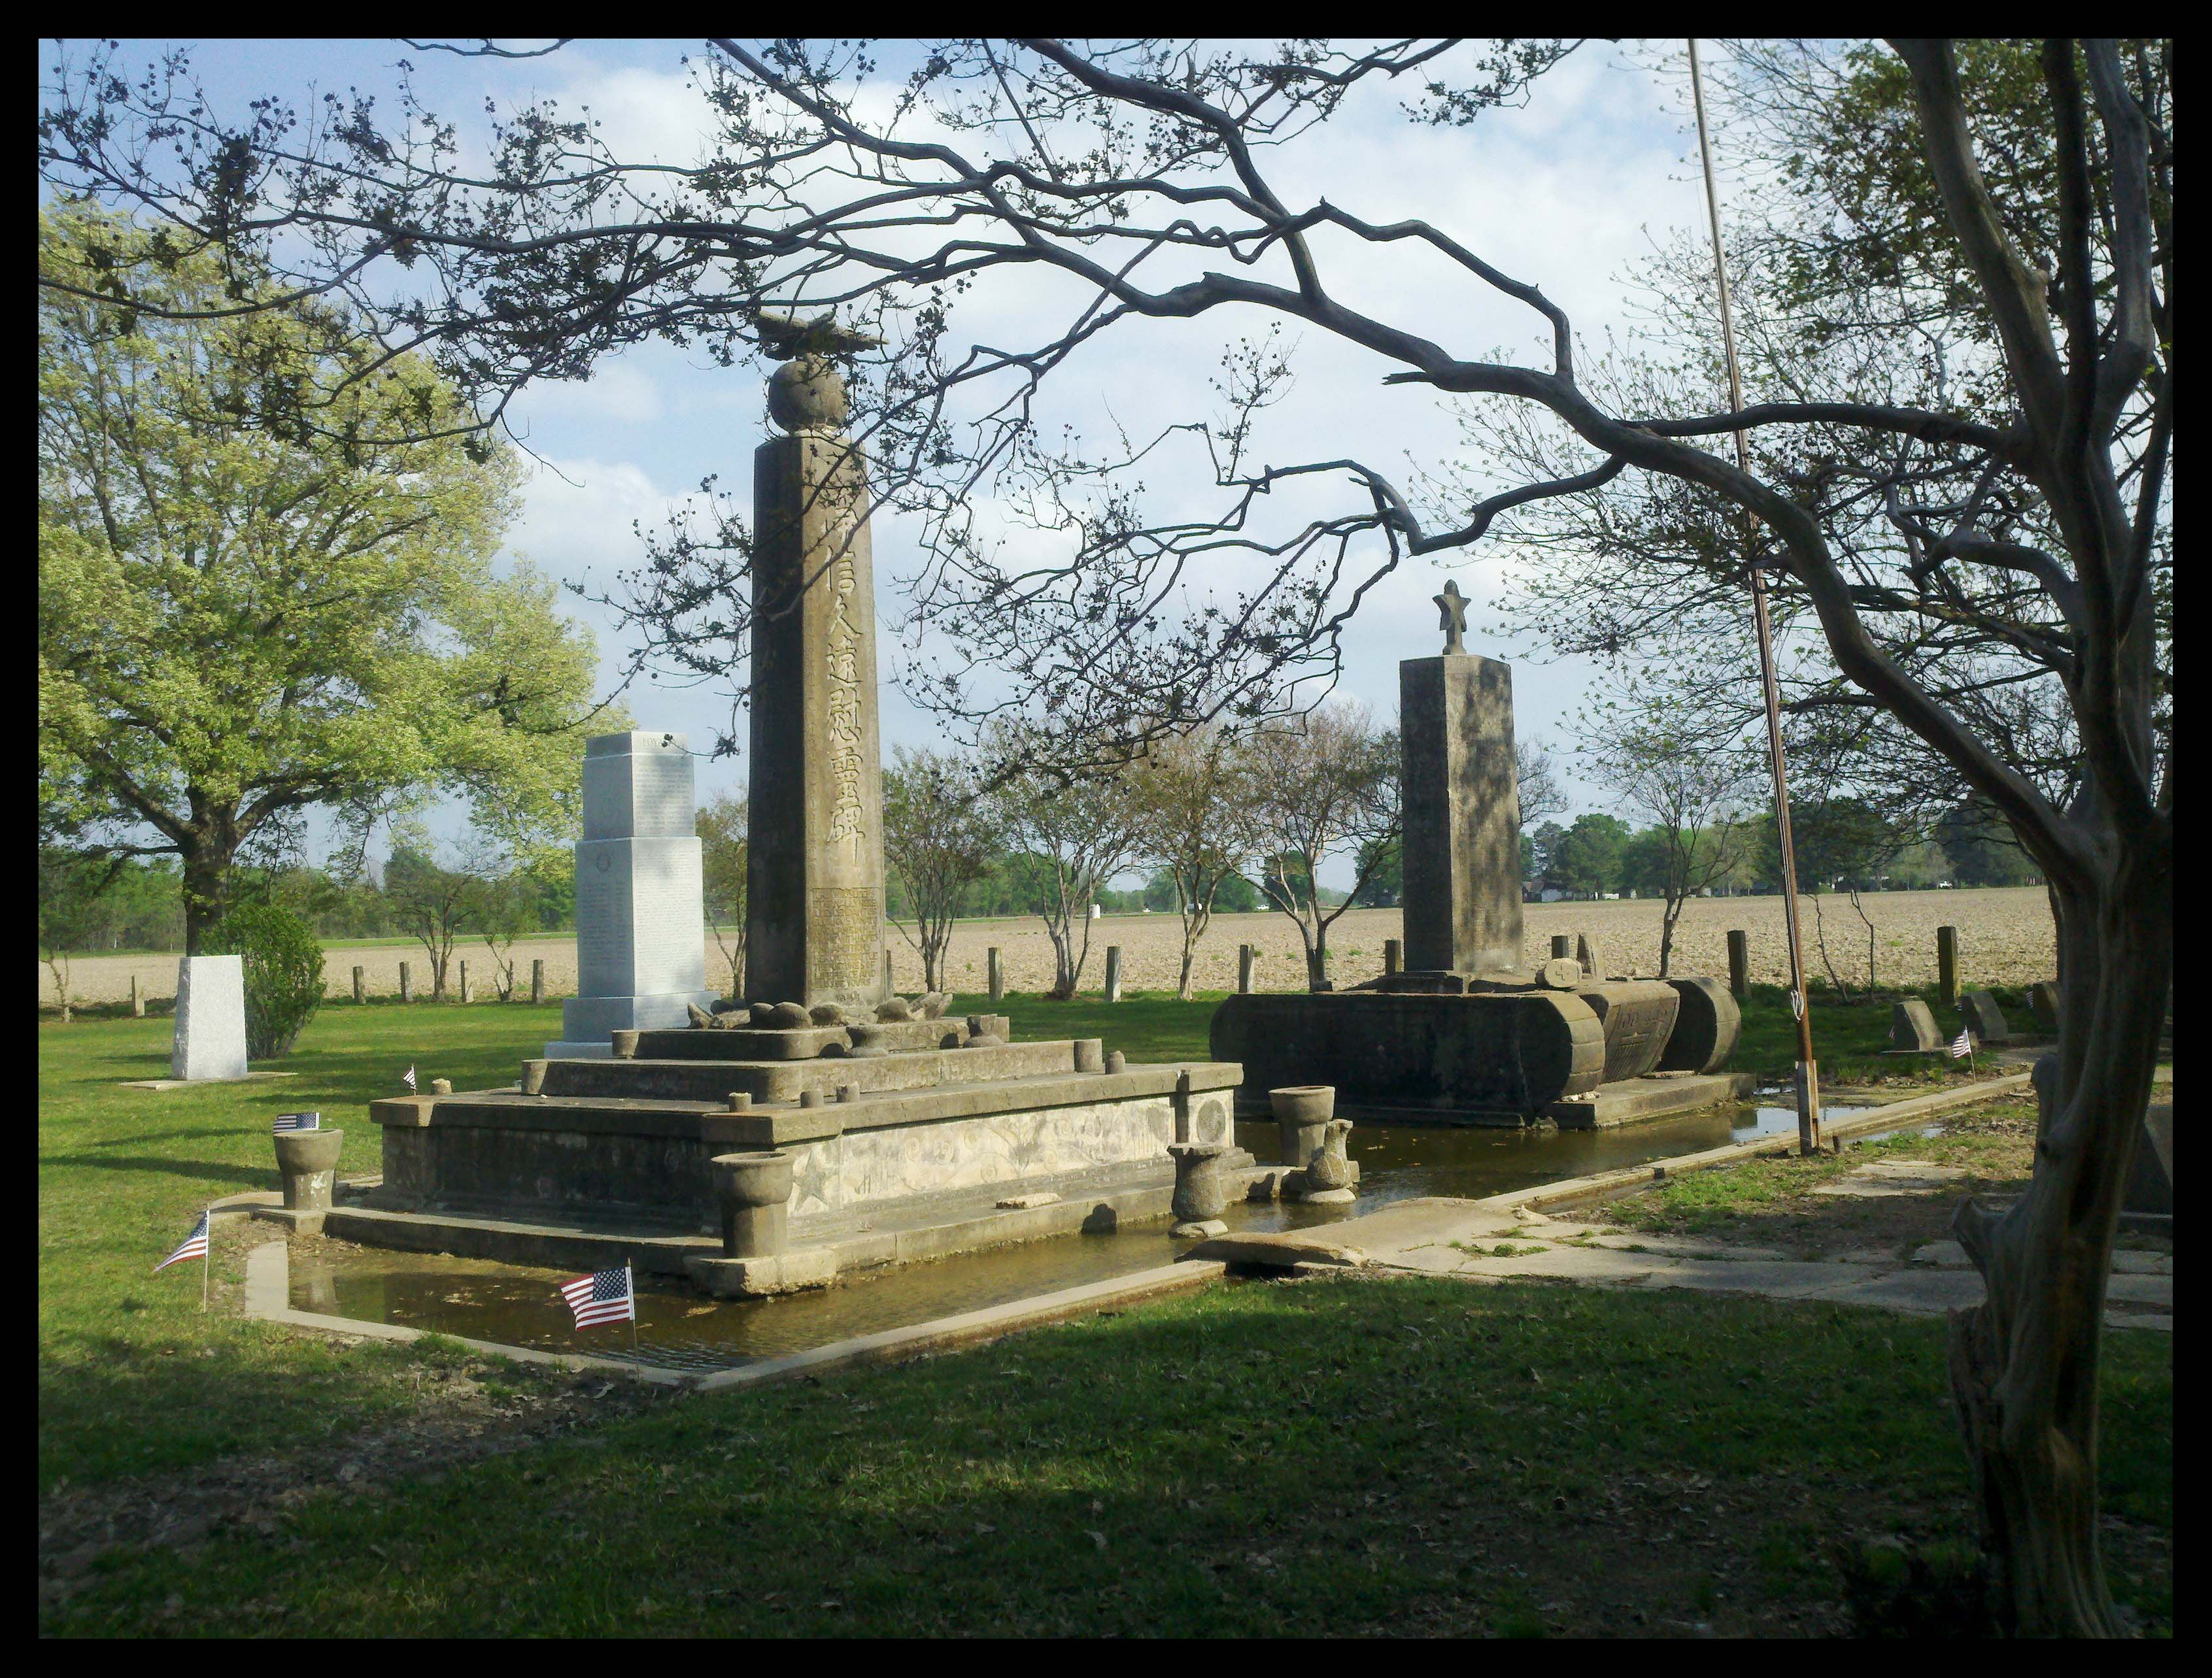 View of Monuments within the Cemetery